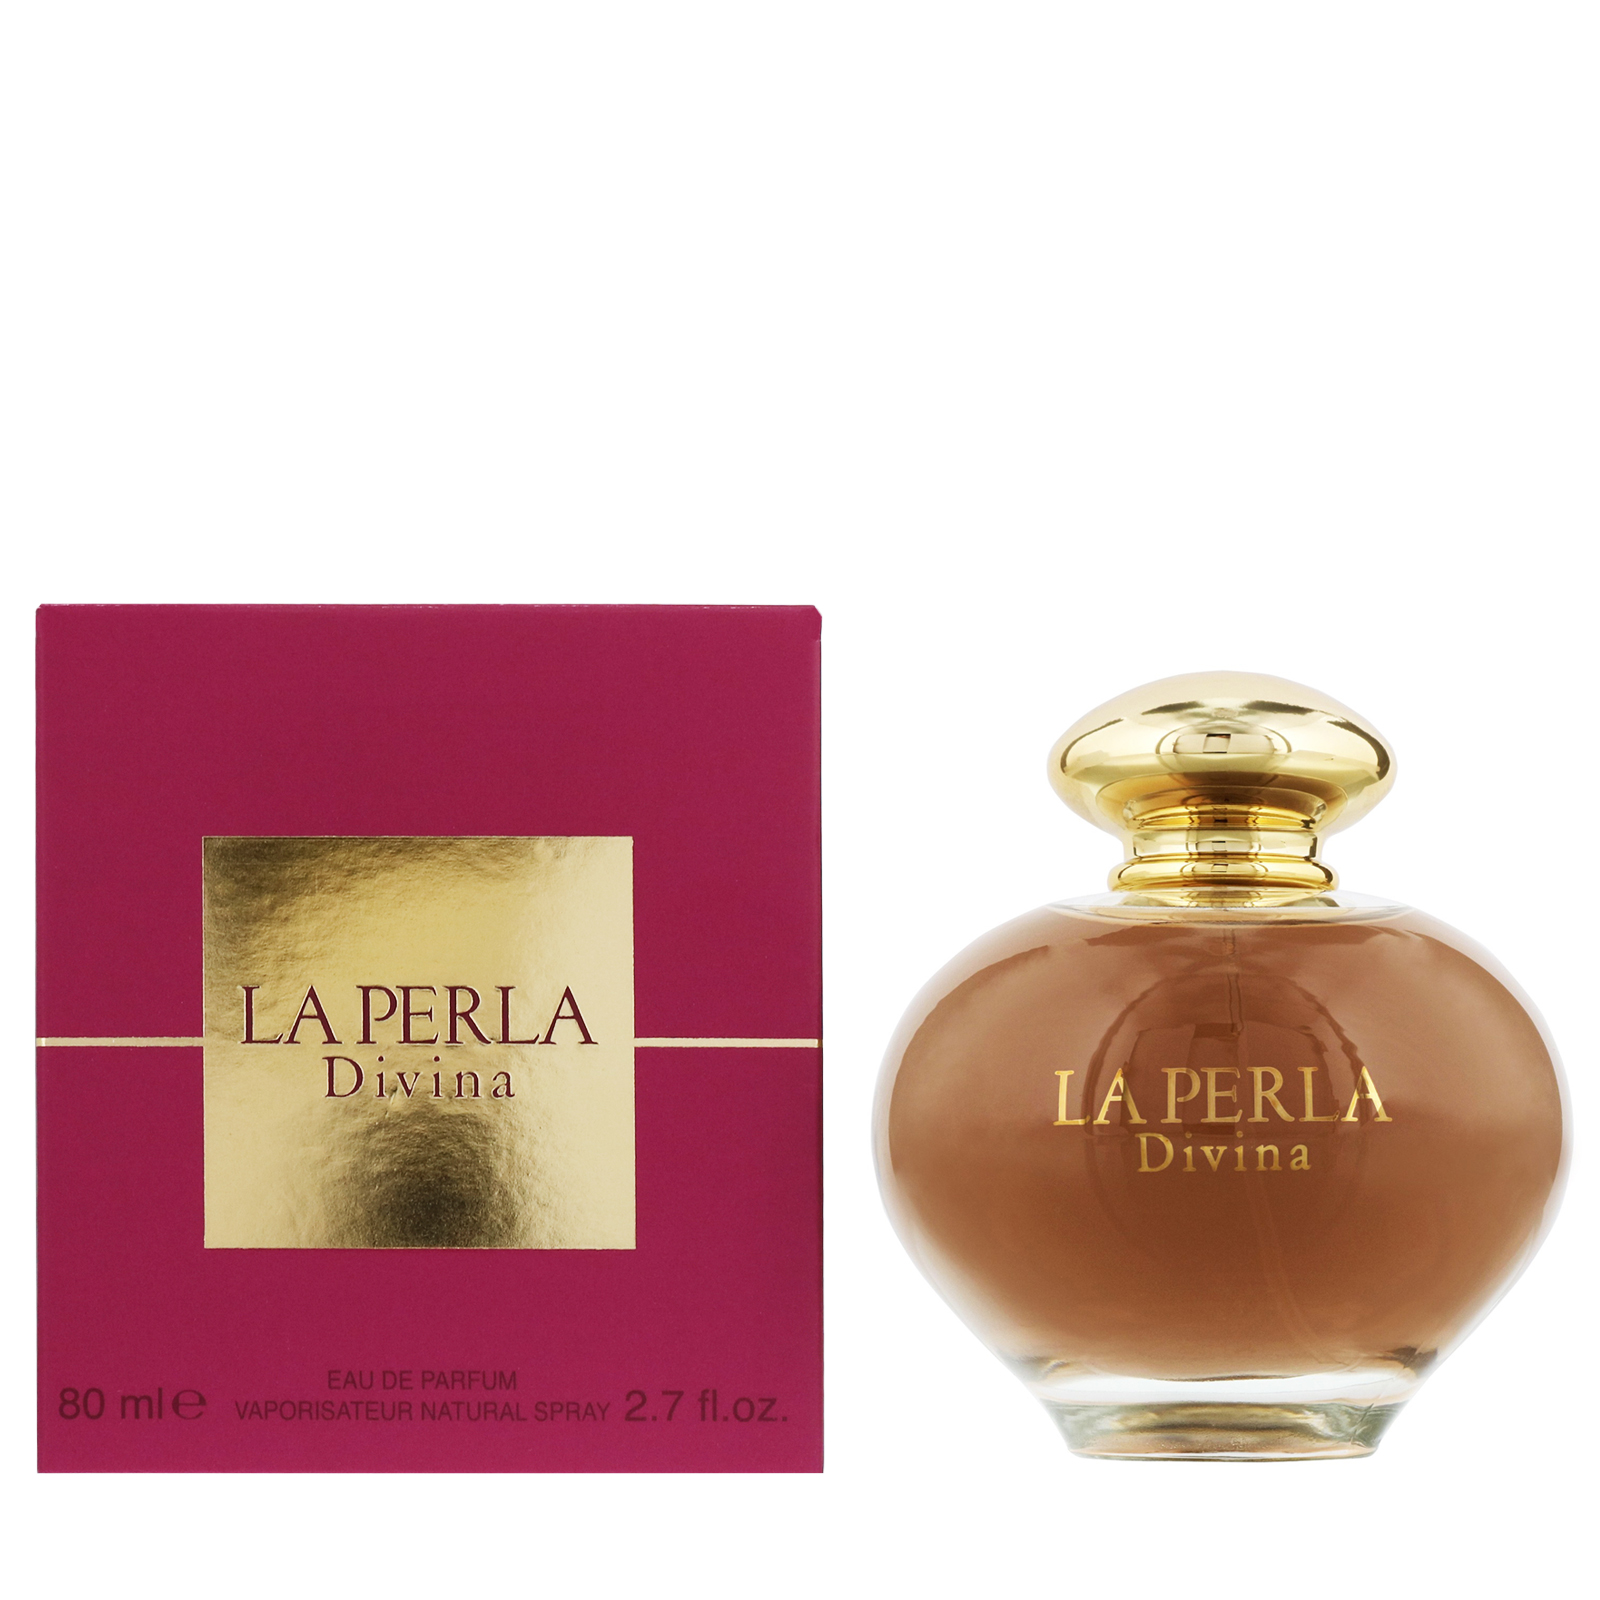 La Perla Eau de Parfum 80ml Spray for